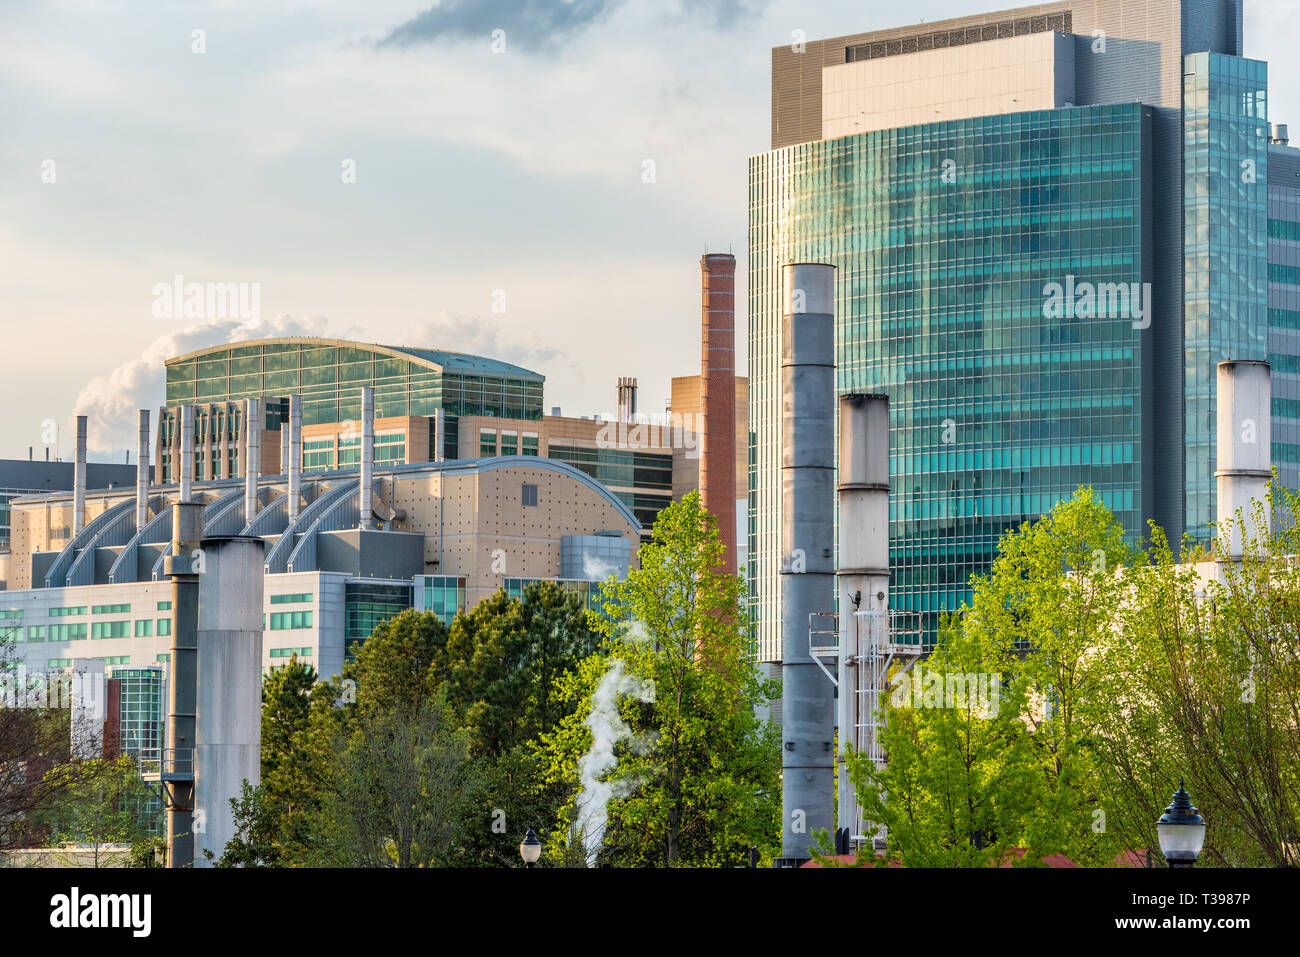 The CDC (Centers for Disease Control and Prevention) as seen from the campus of Emory University in Atlanta, Georgia. (USA) - Stock Image